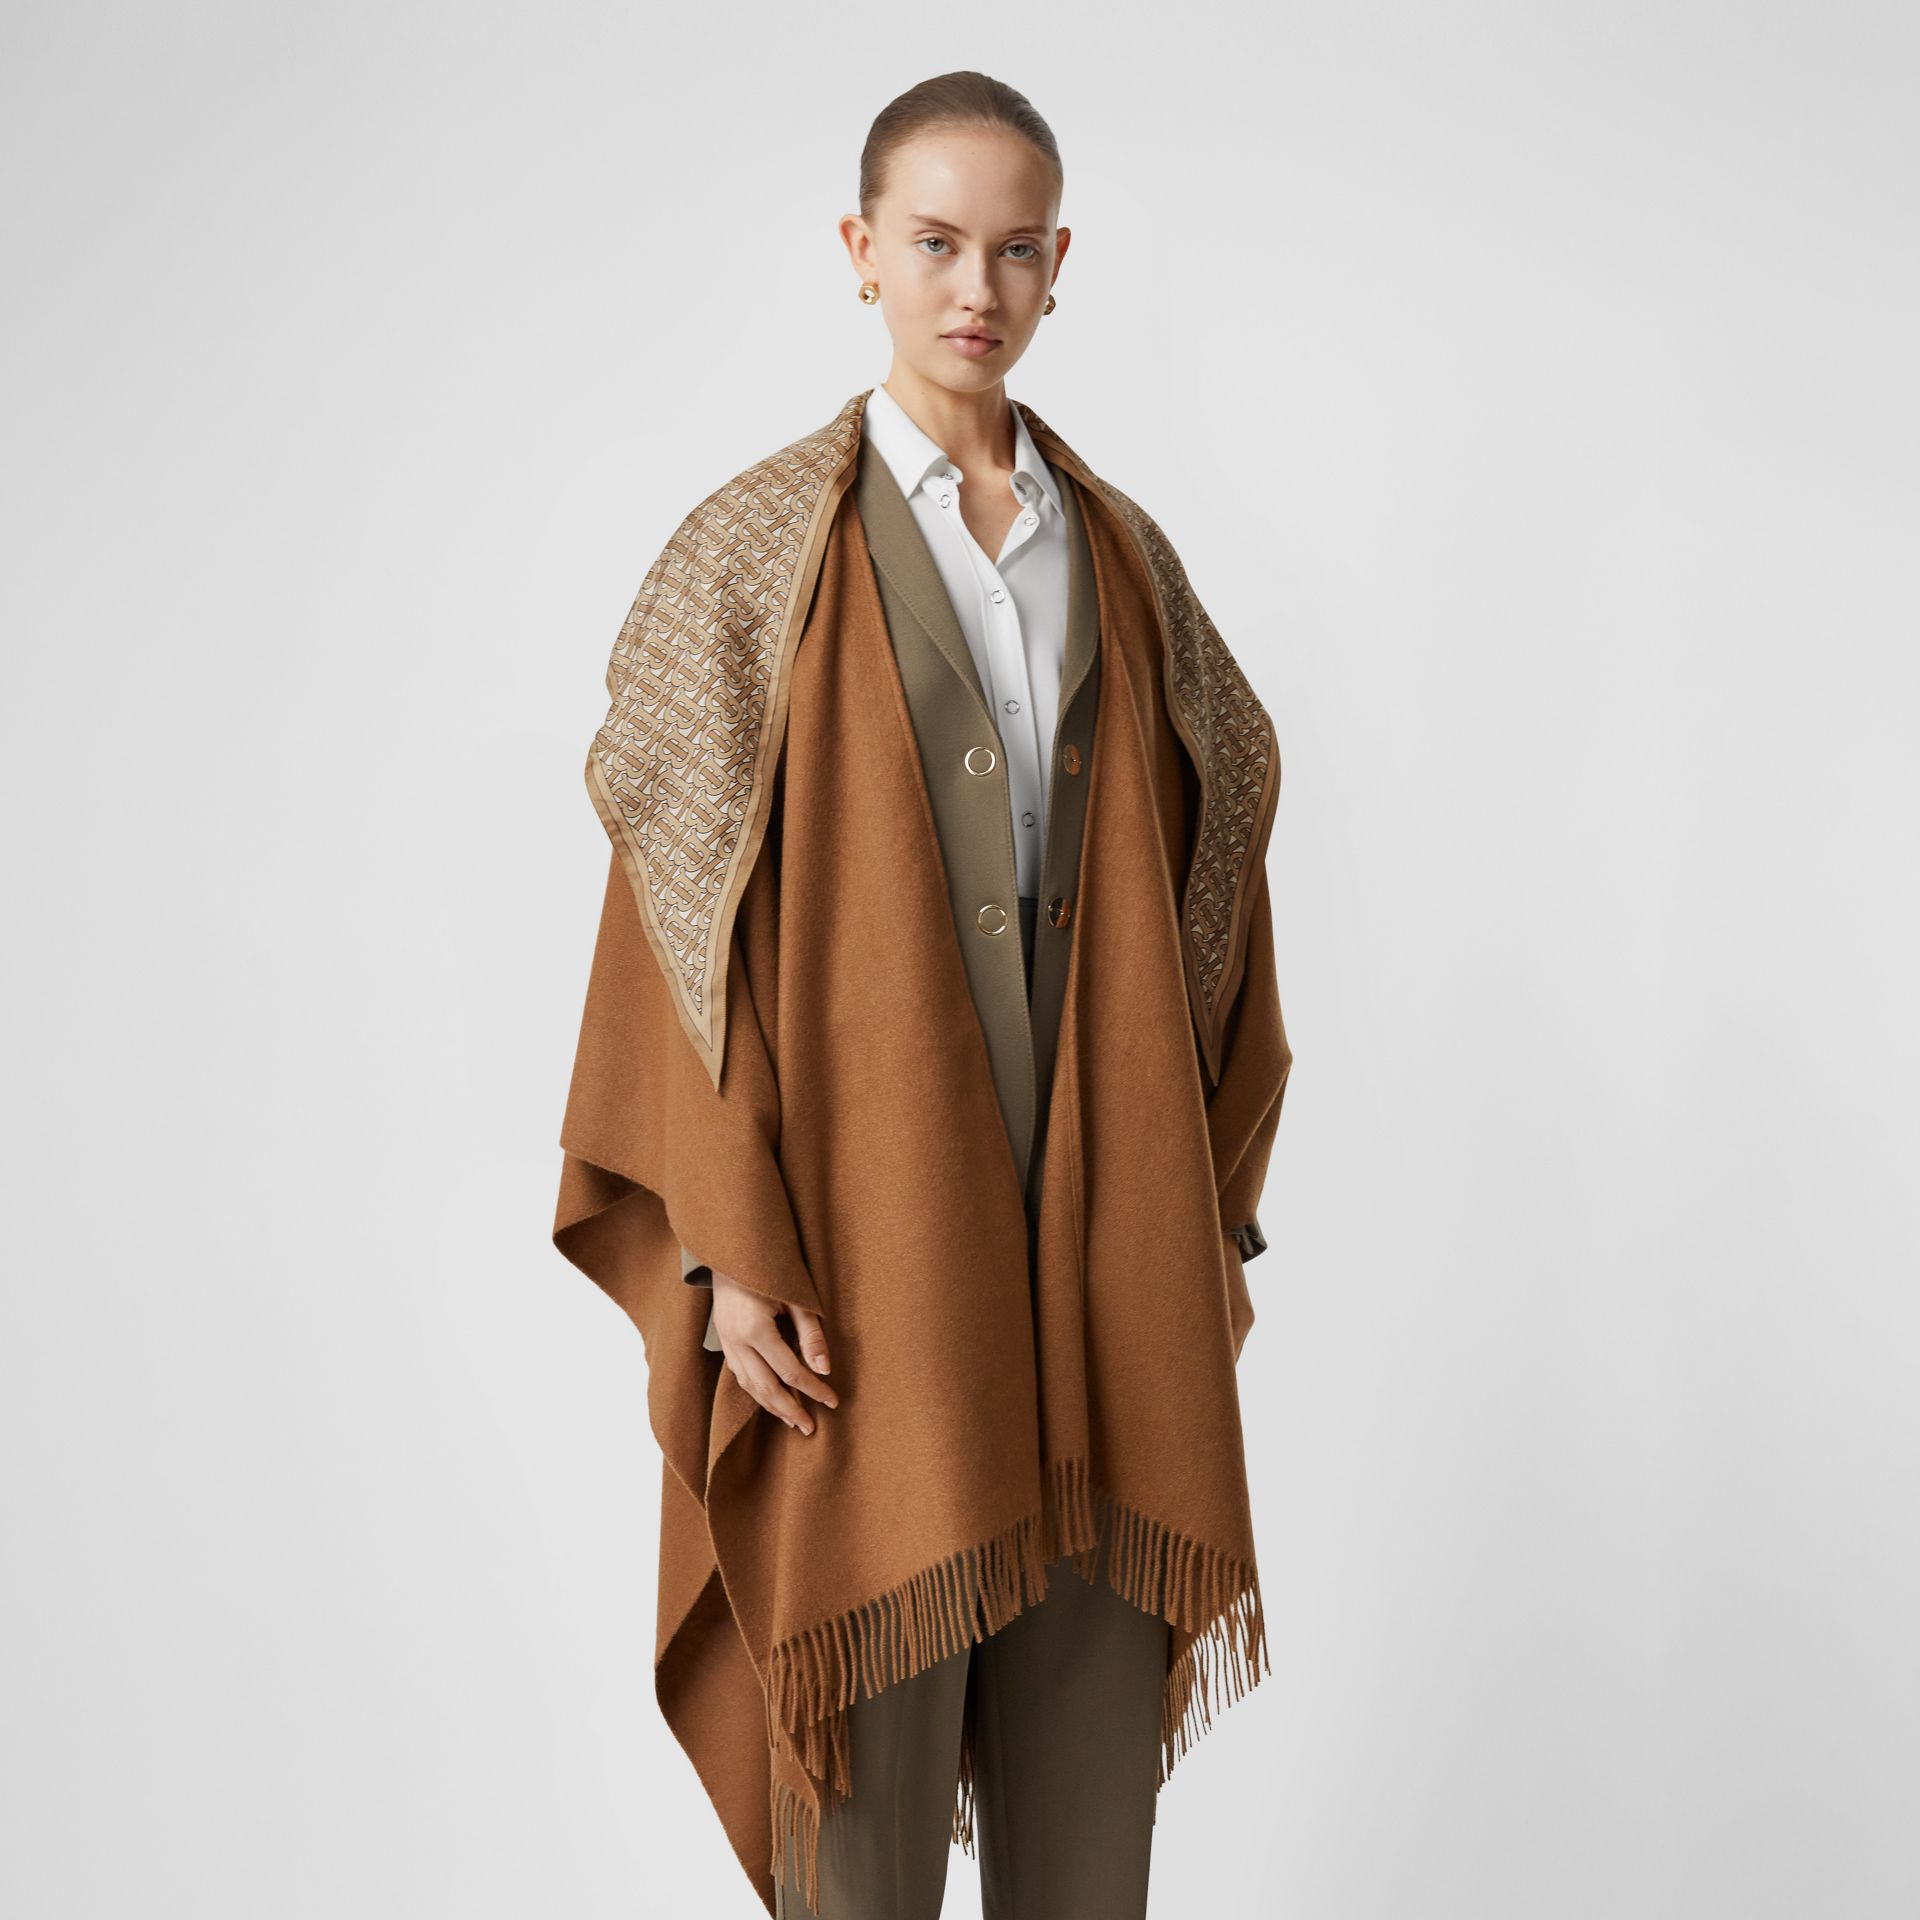 Detachable Monogram Print Scarf Cashmere Cape in Fern - Women | Burberry - gallery image 6